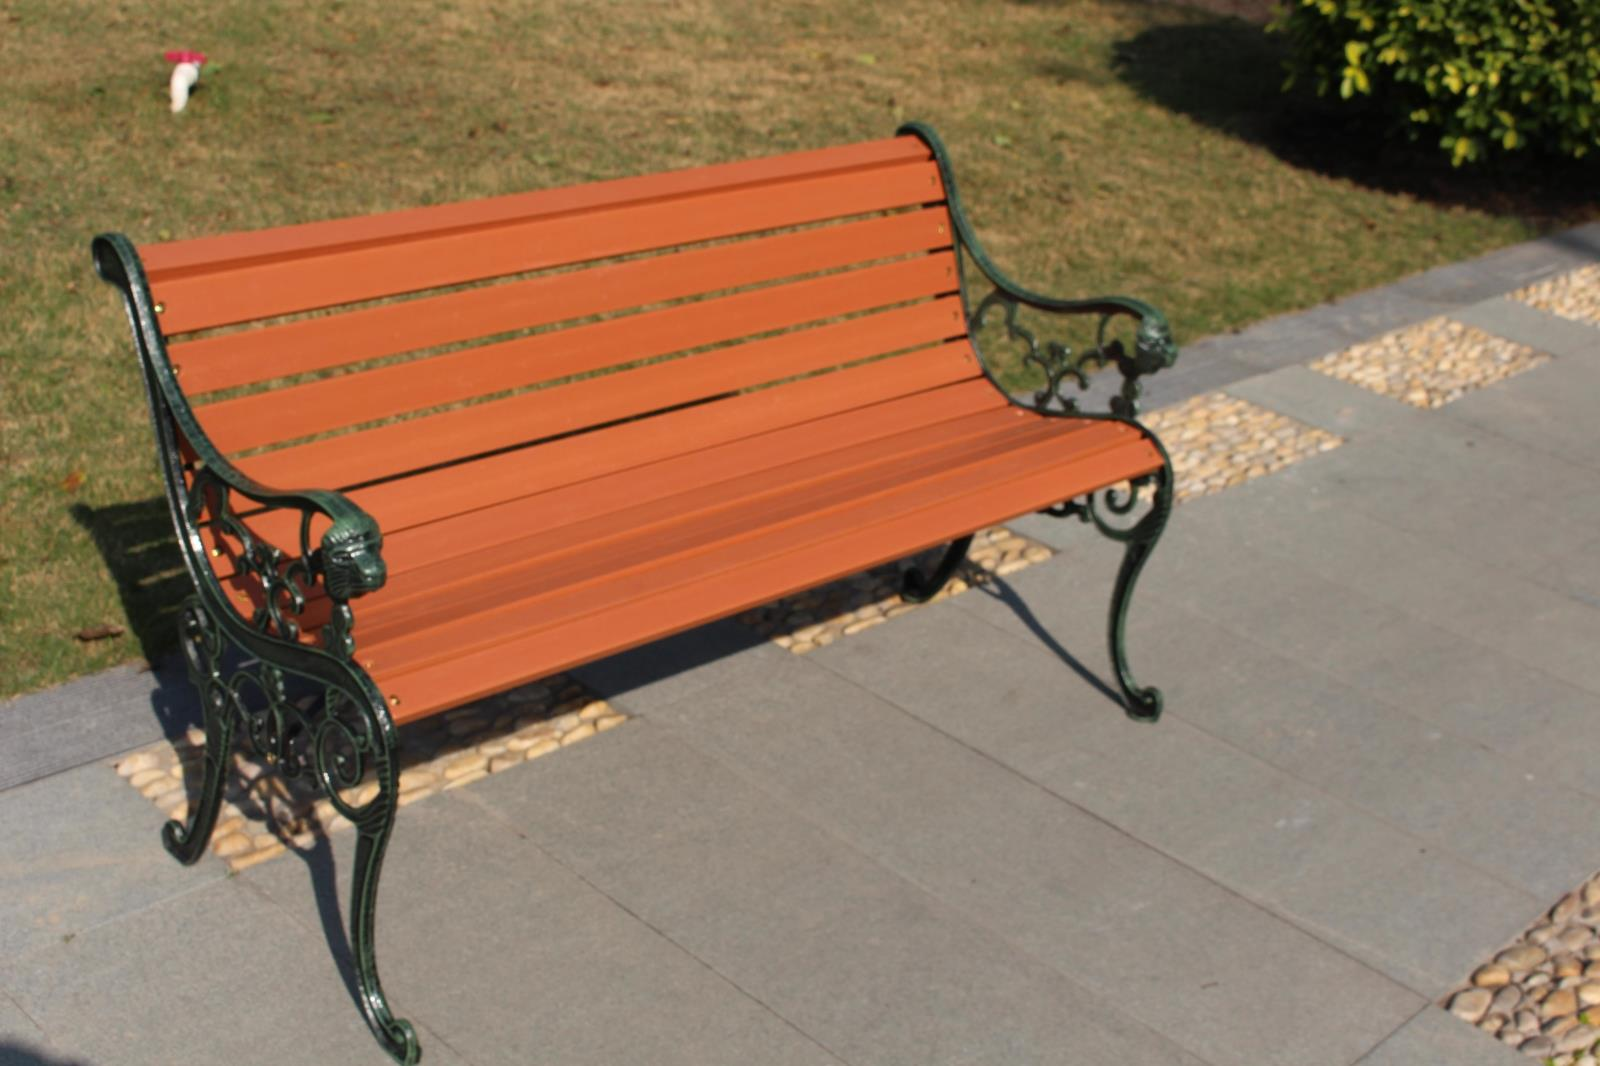 Garden Seats Benches Us 214 5 Outdoor Furniture Park Chairs Iron Garden Bench Benches Chair Square In Patio Benches From Furniture On Aliexpress Alibaba Group